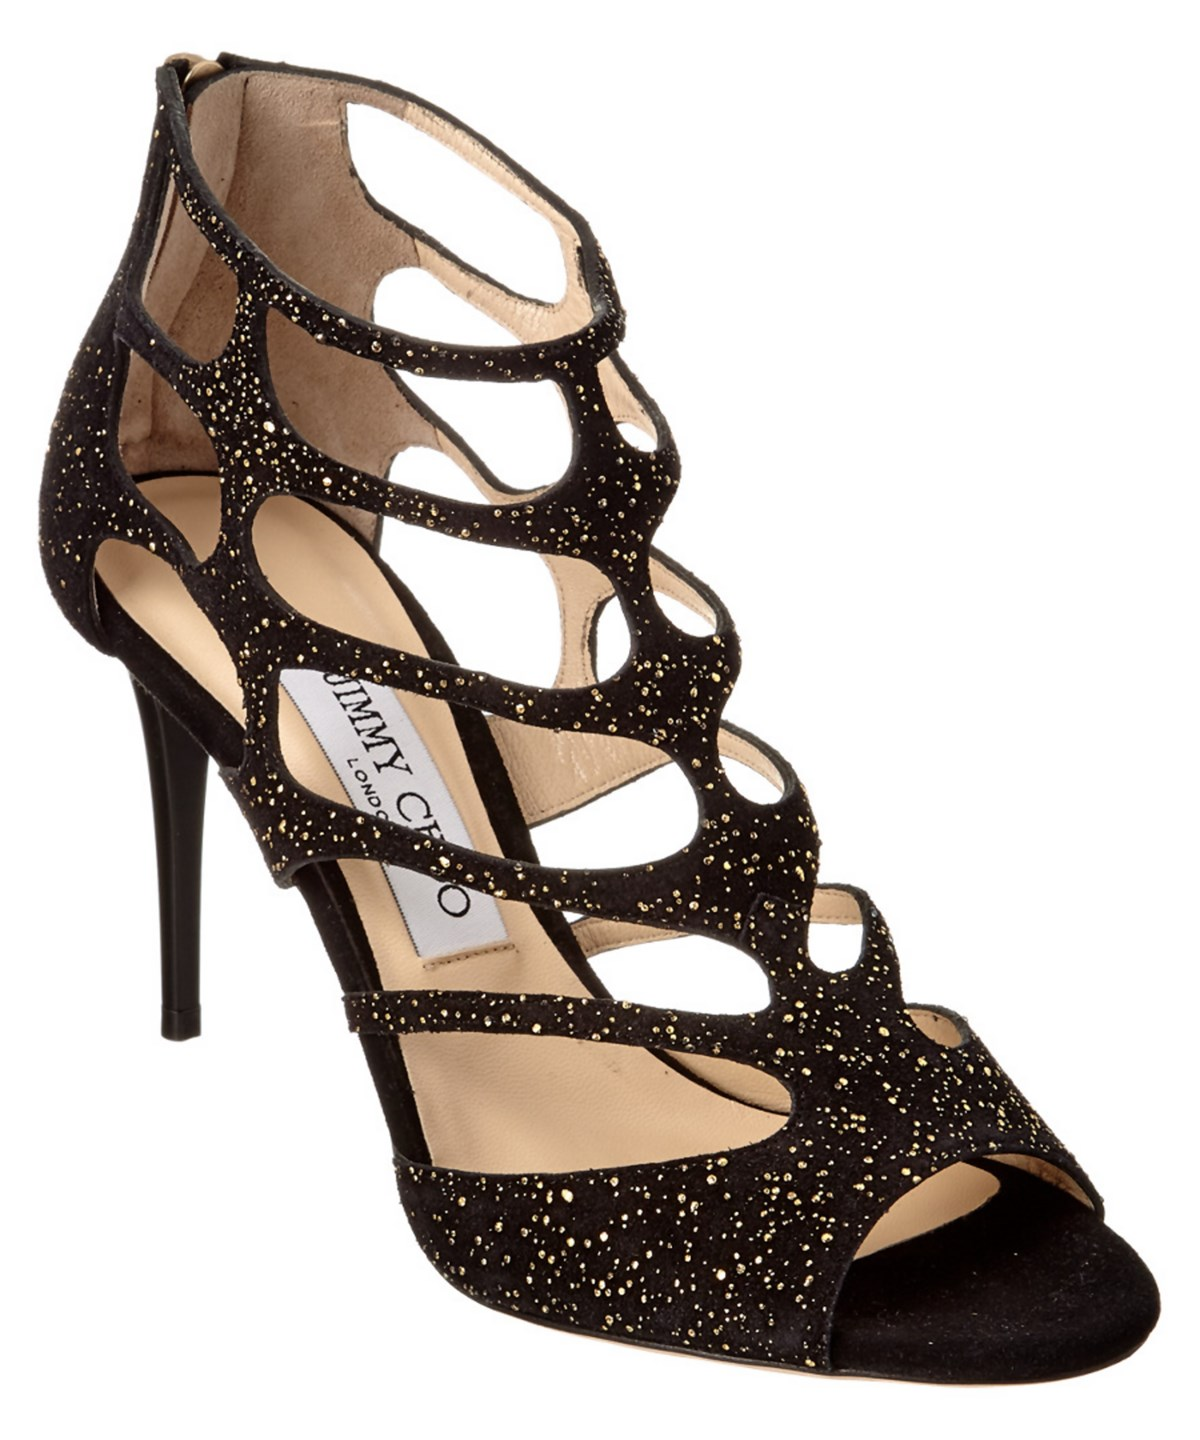 Jimmy Choo Gentle Souls Beverly Suede Sandal In Black/gold